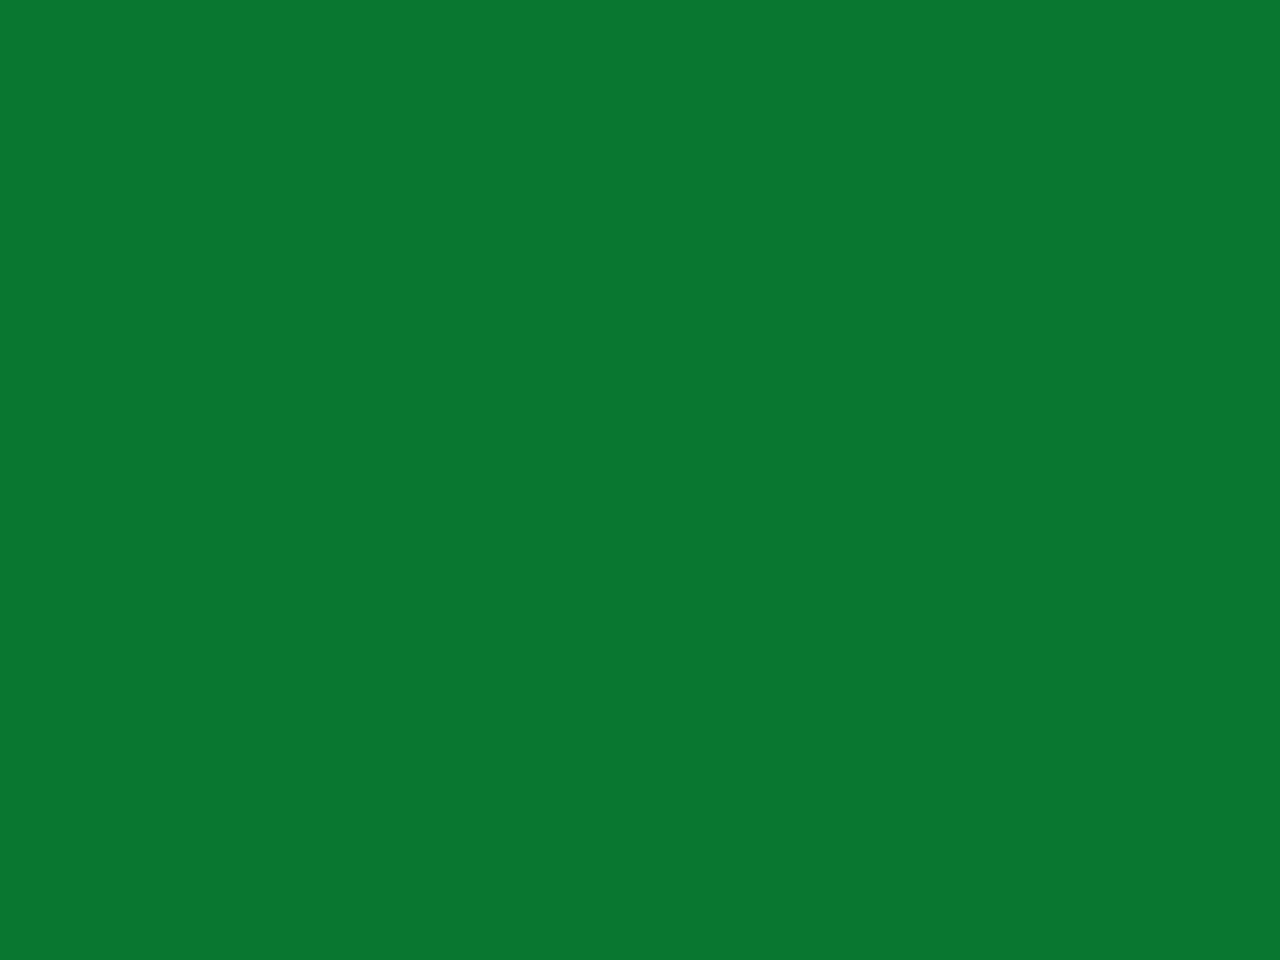 1280x960 La Salle Green Solid Color Background